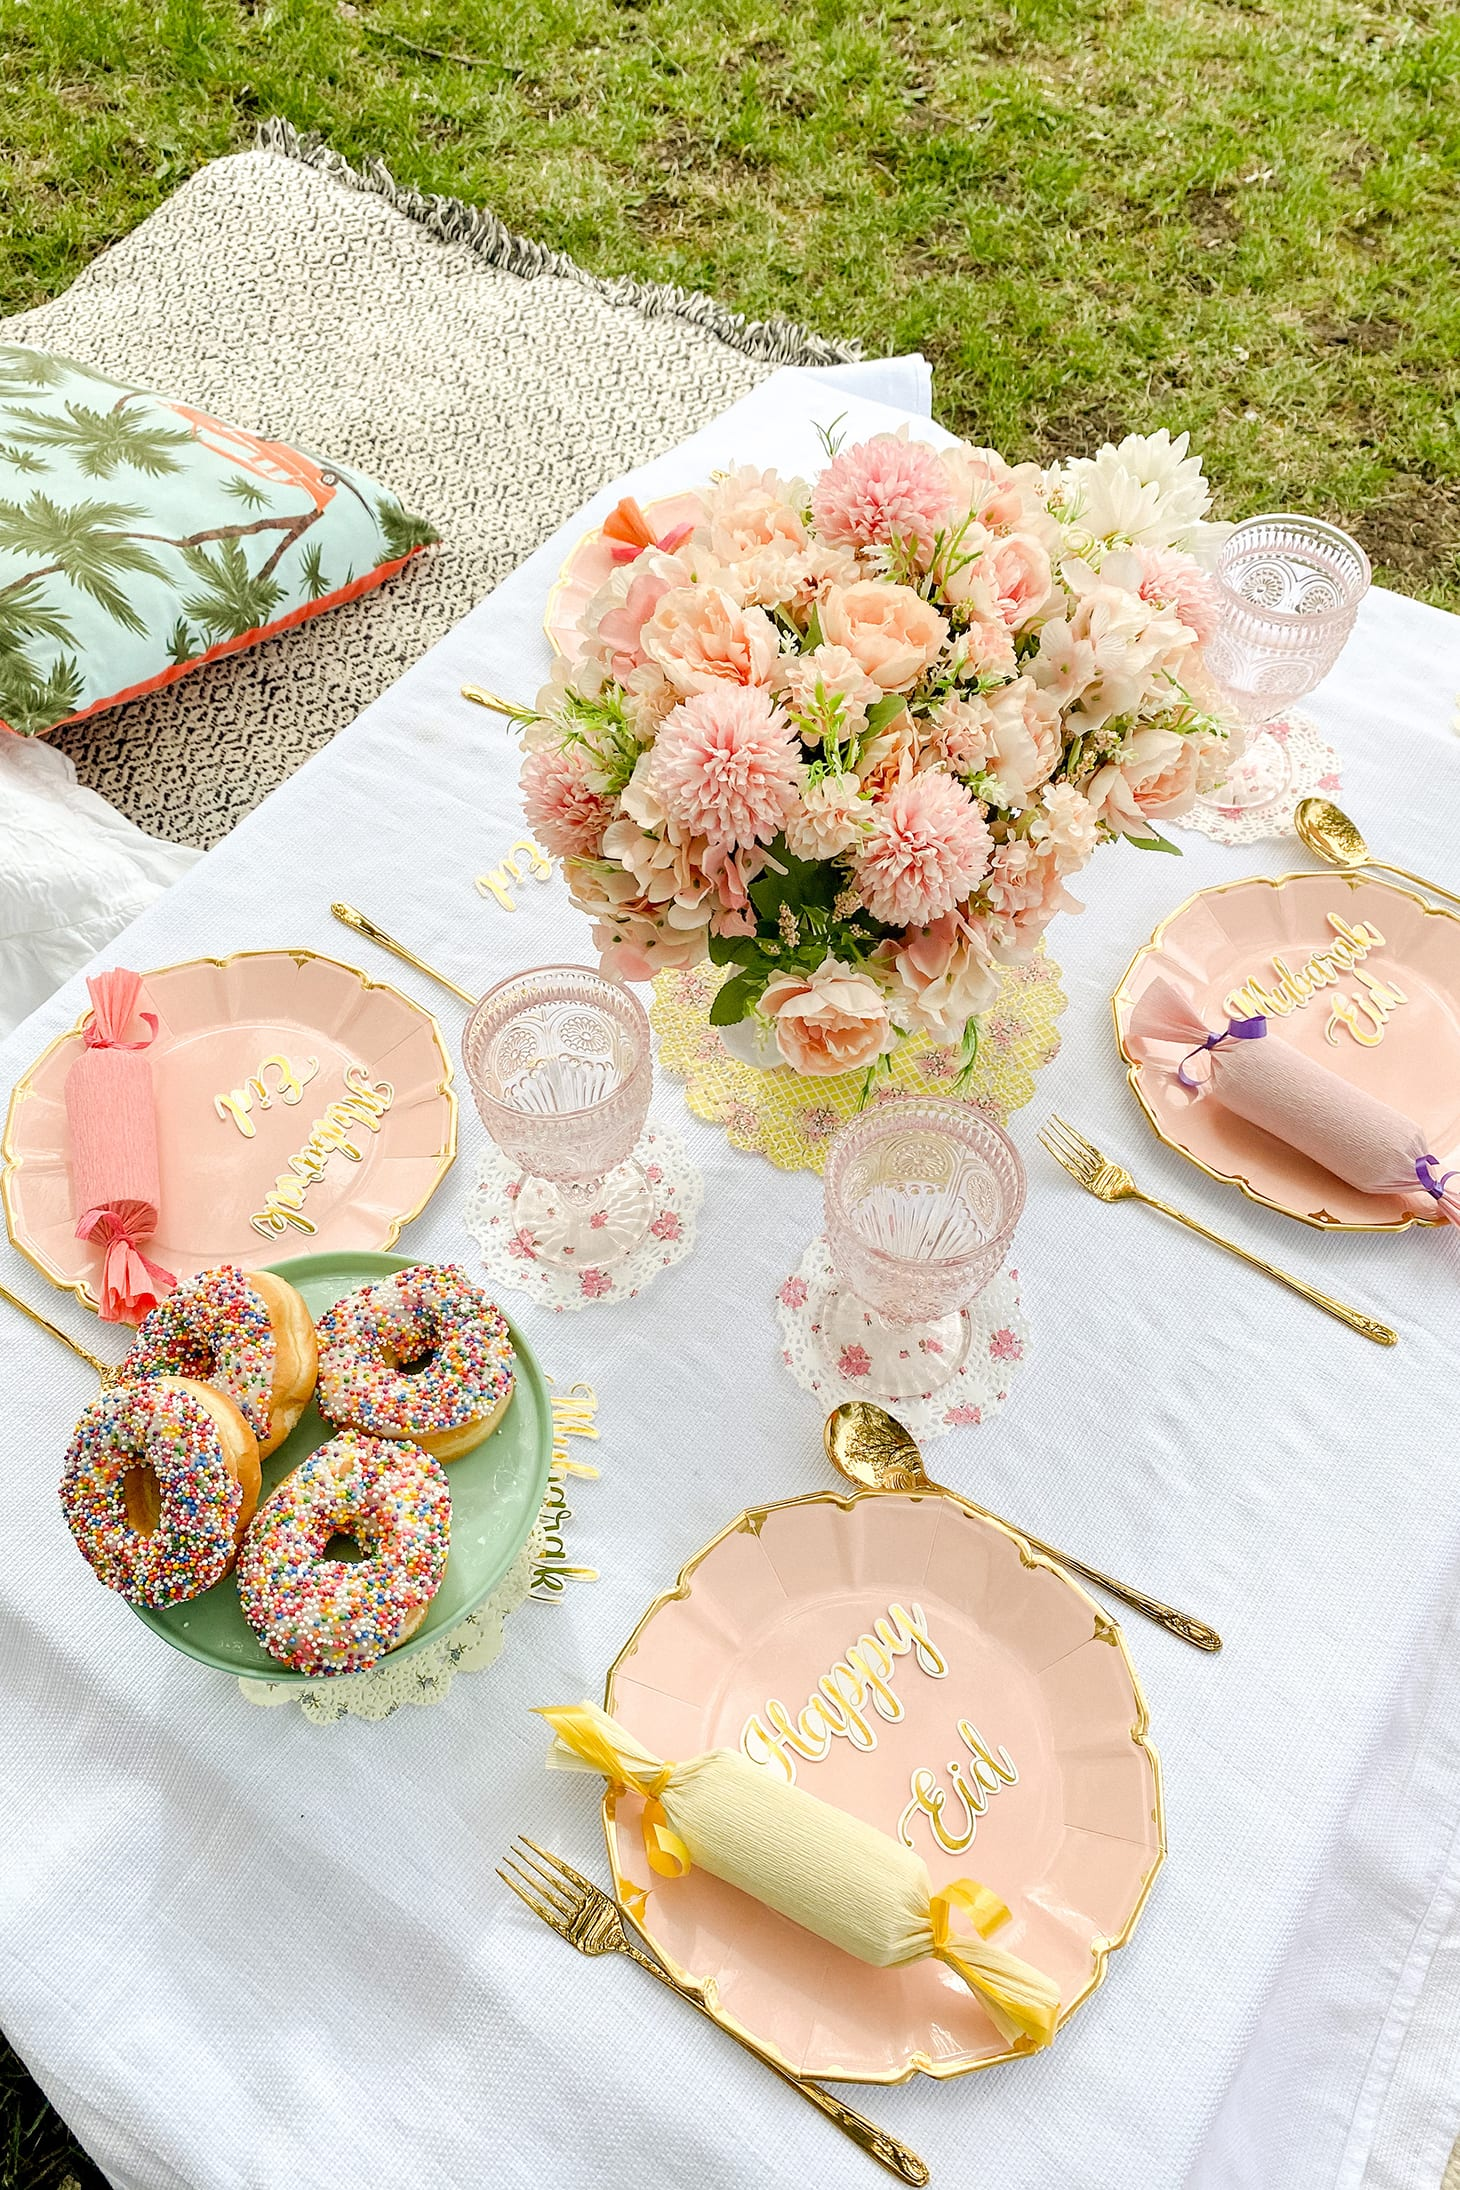 Table decorated to show Eid Day Traditions